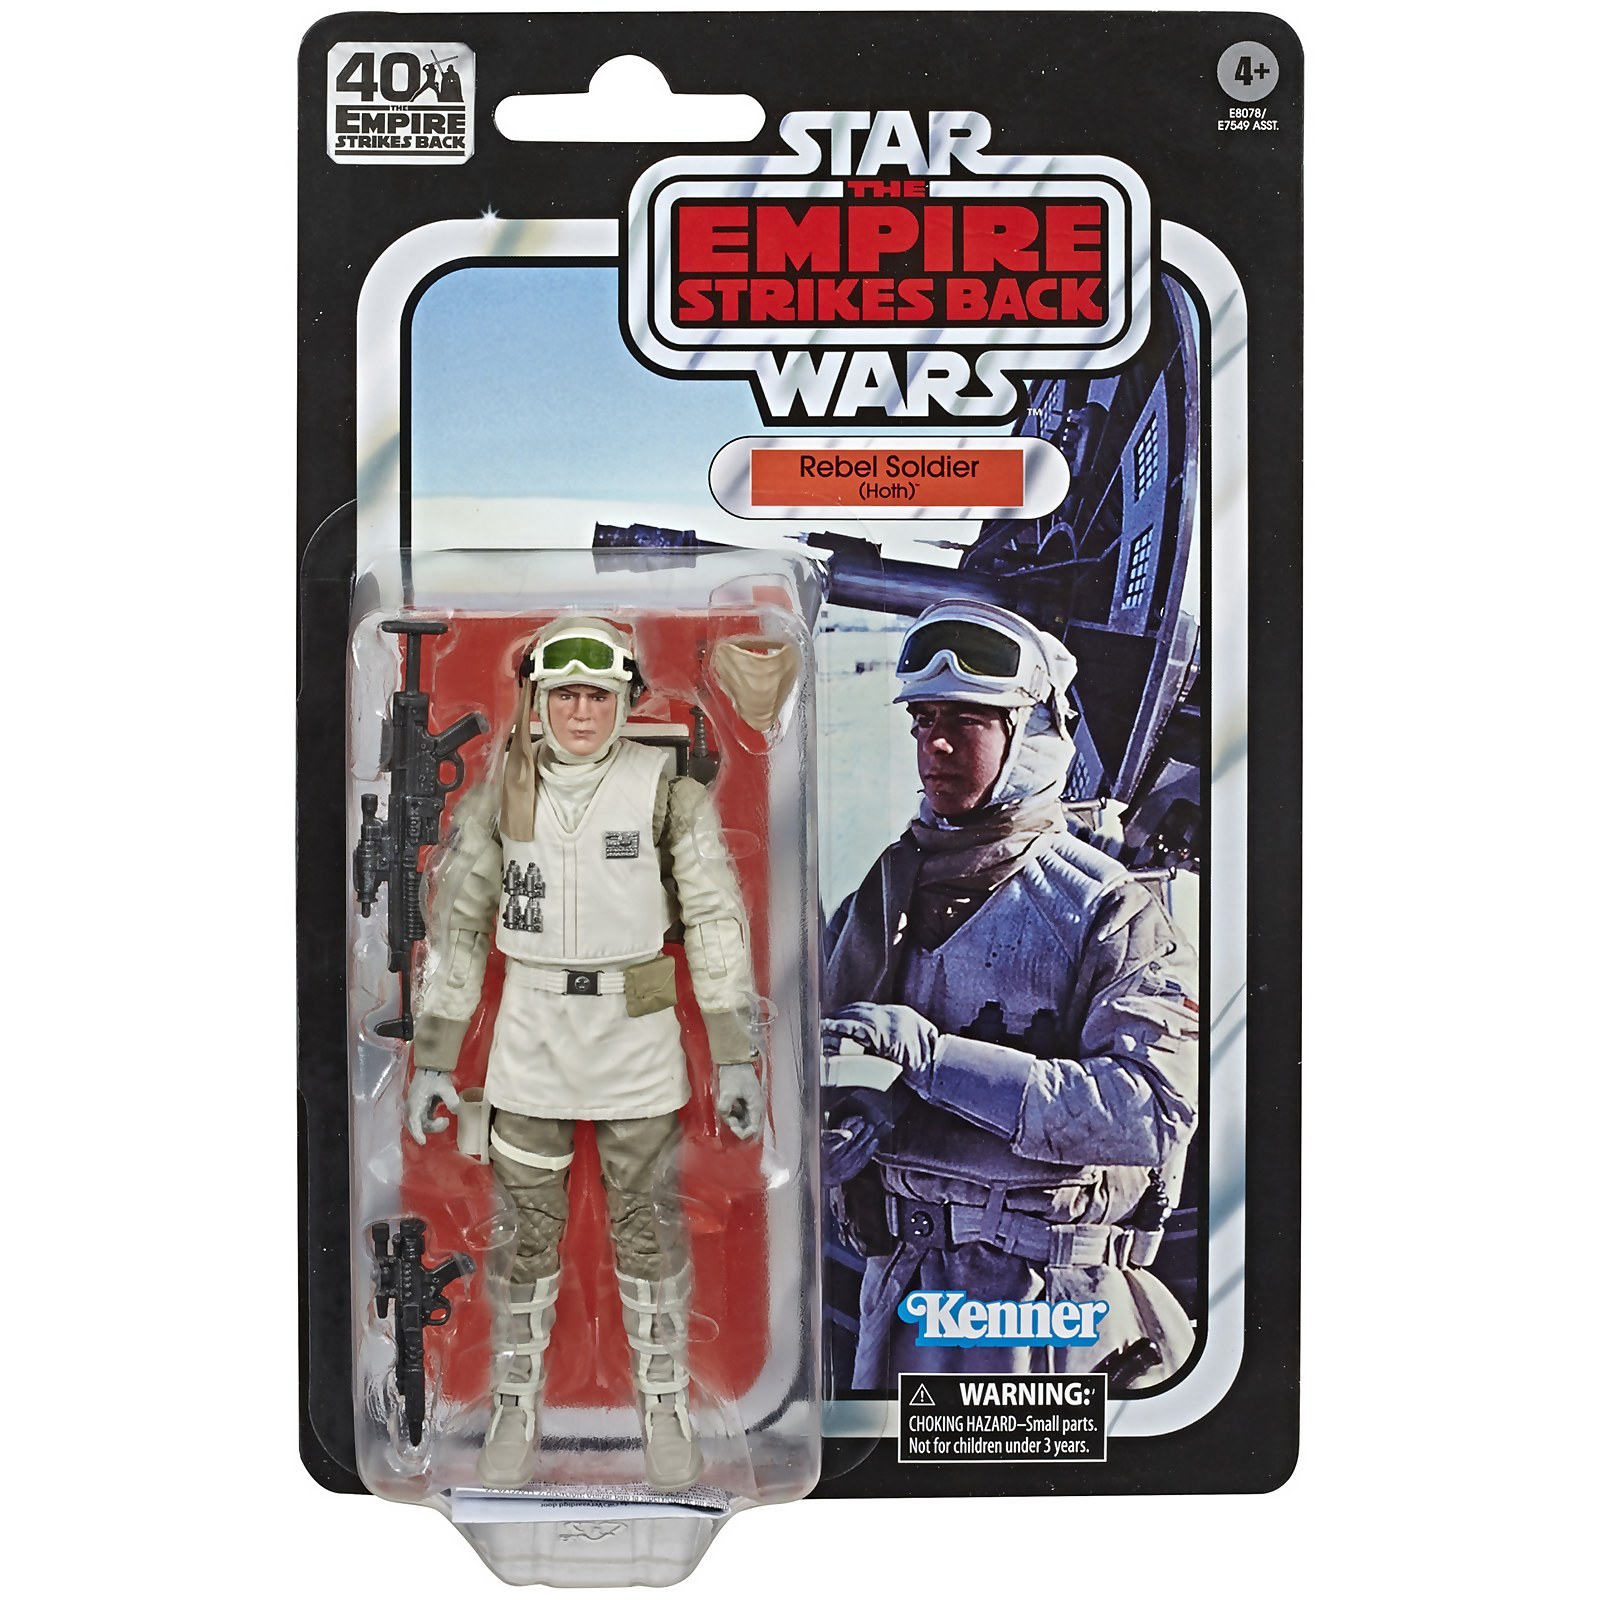 Image of Hasbro Star Wars The Black Series Rebel Soldier (Hoth) Toy Action Figure